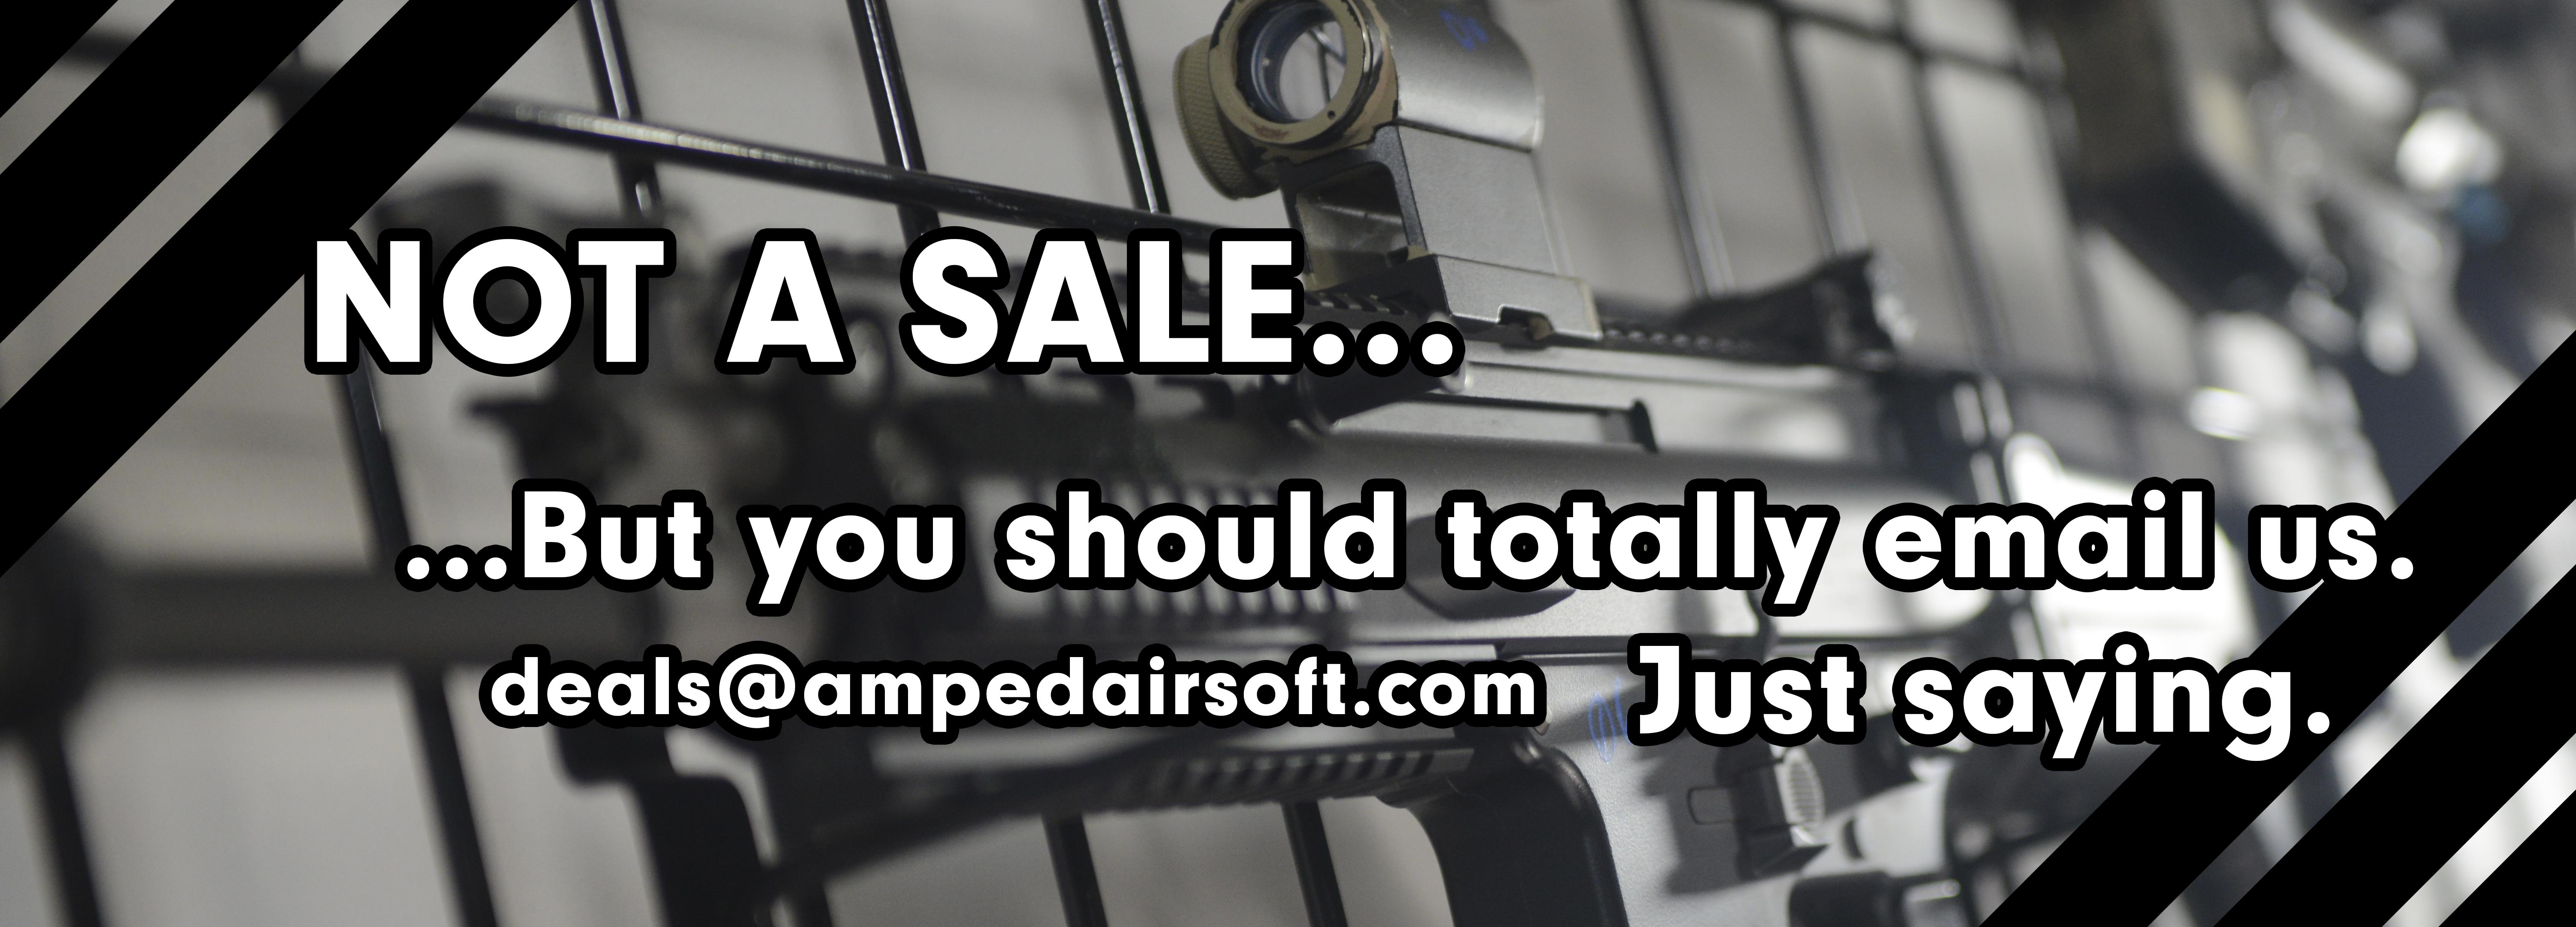 Not A Sale, you should totally email us!